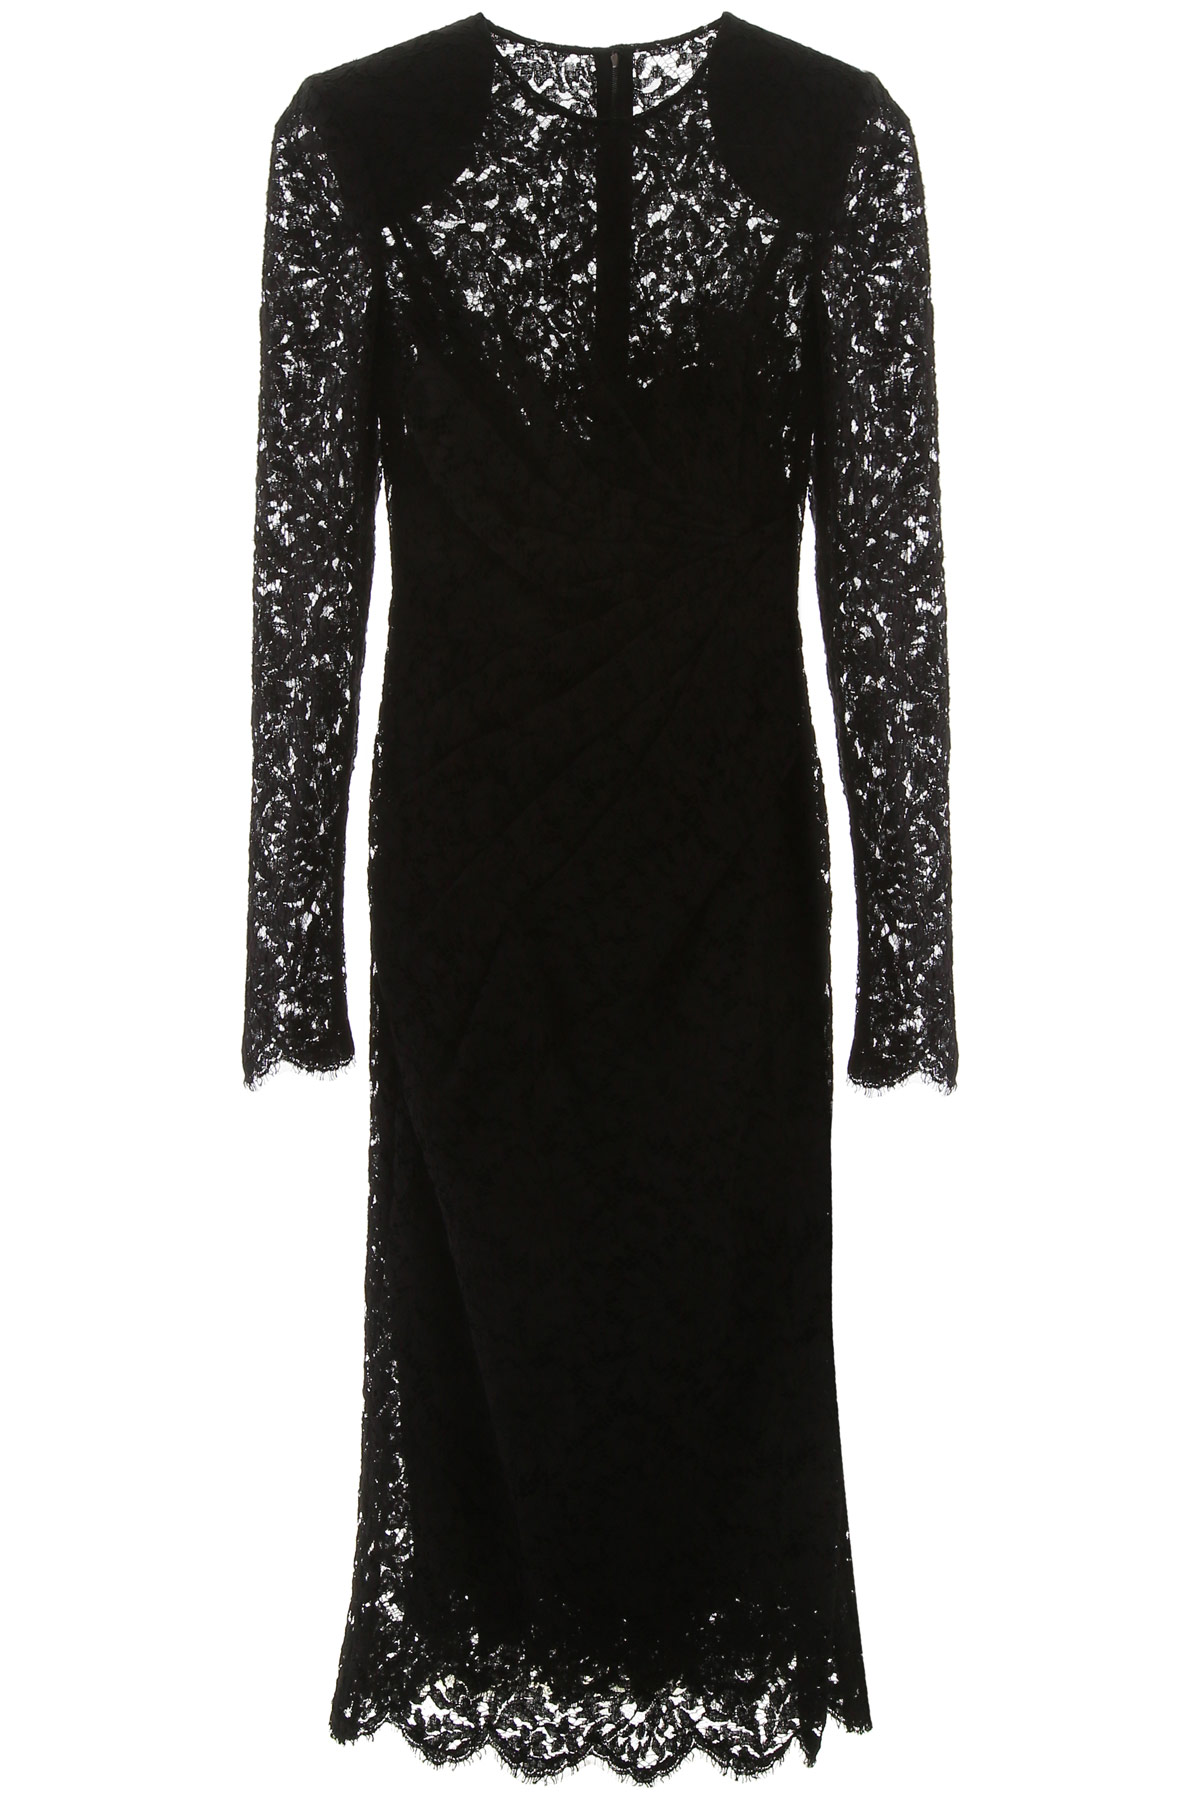 DOLCE & GABBANA LACE DRAPED DRESS 42 Black Cotton